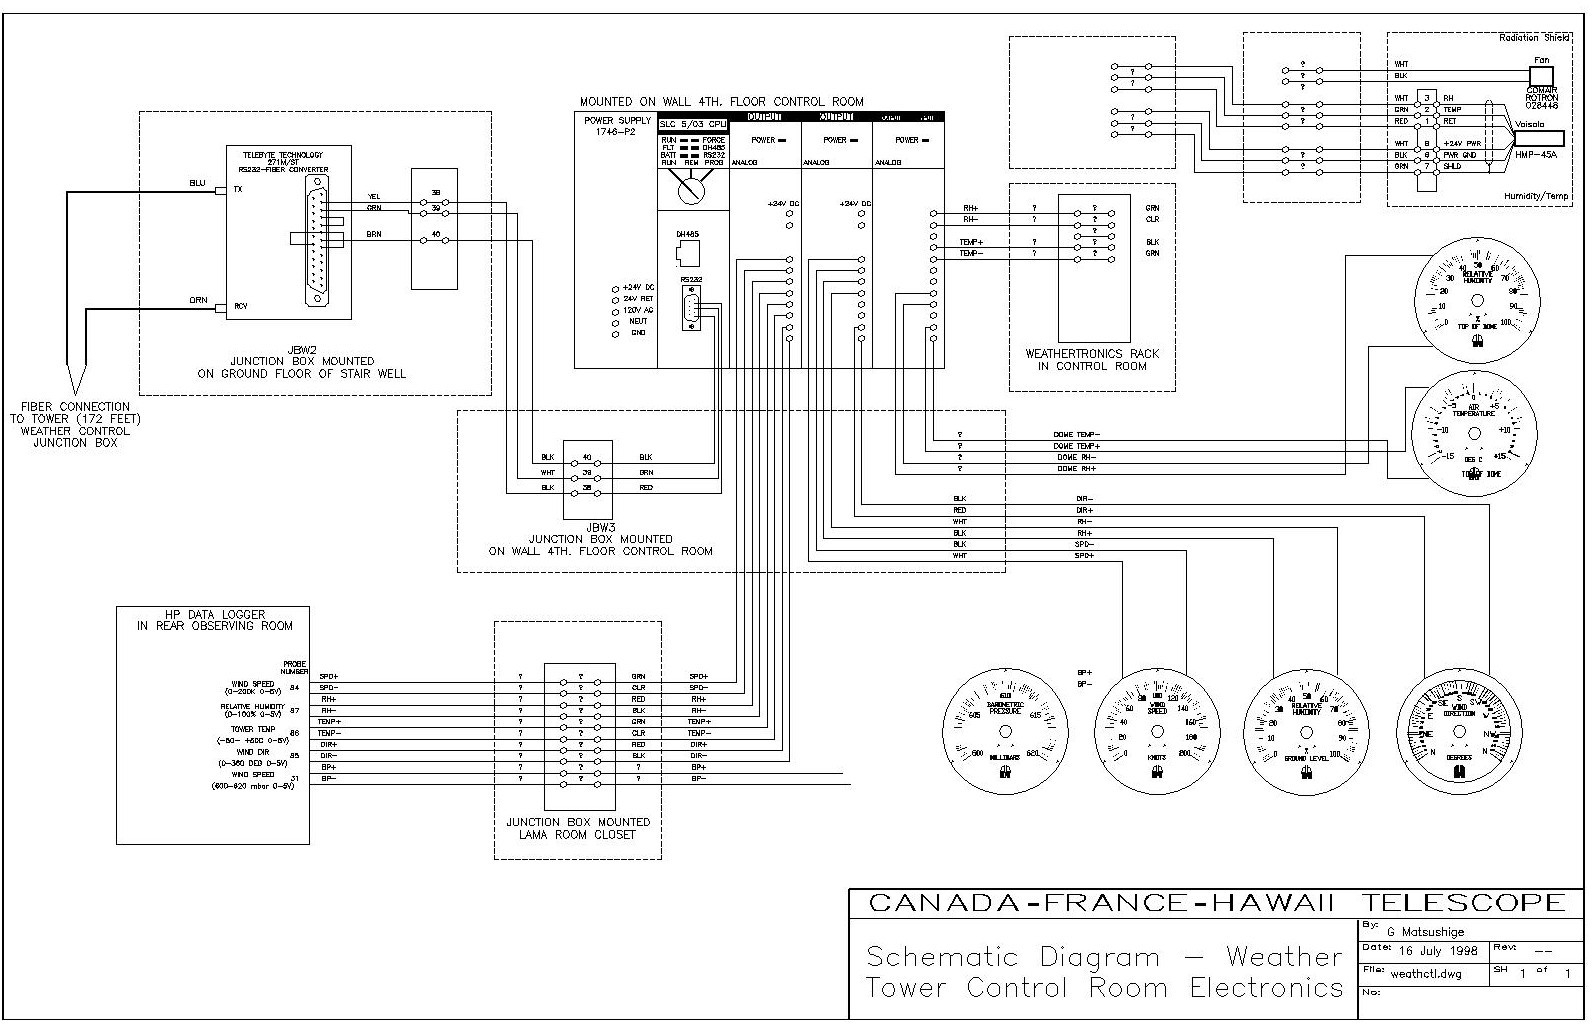 allen bradley 855t wiring diagram Collection-allen bradley motor control wiring diagrams diagram throughout 0 rh natebird me allen bradley plc wiring diagrams allen bradley plc wiring diagrams pdf 1-q